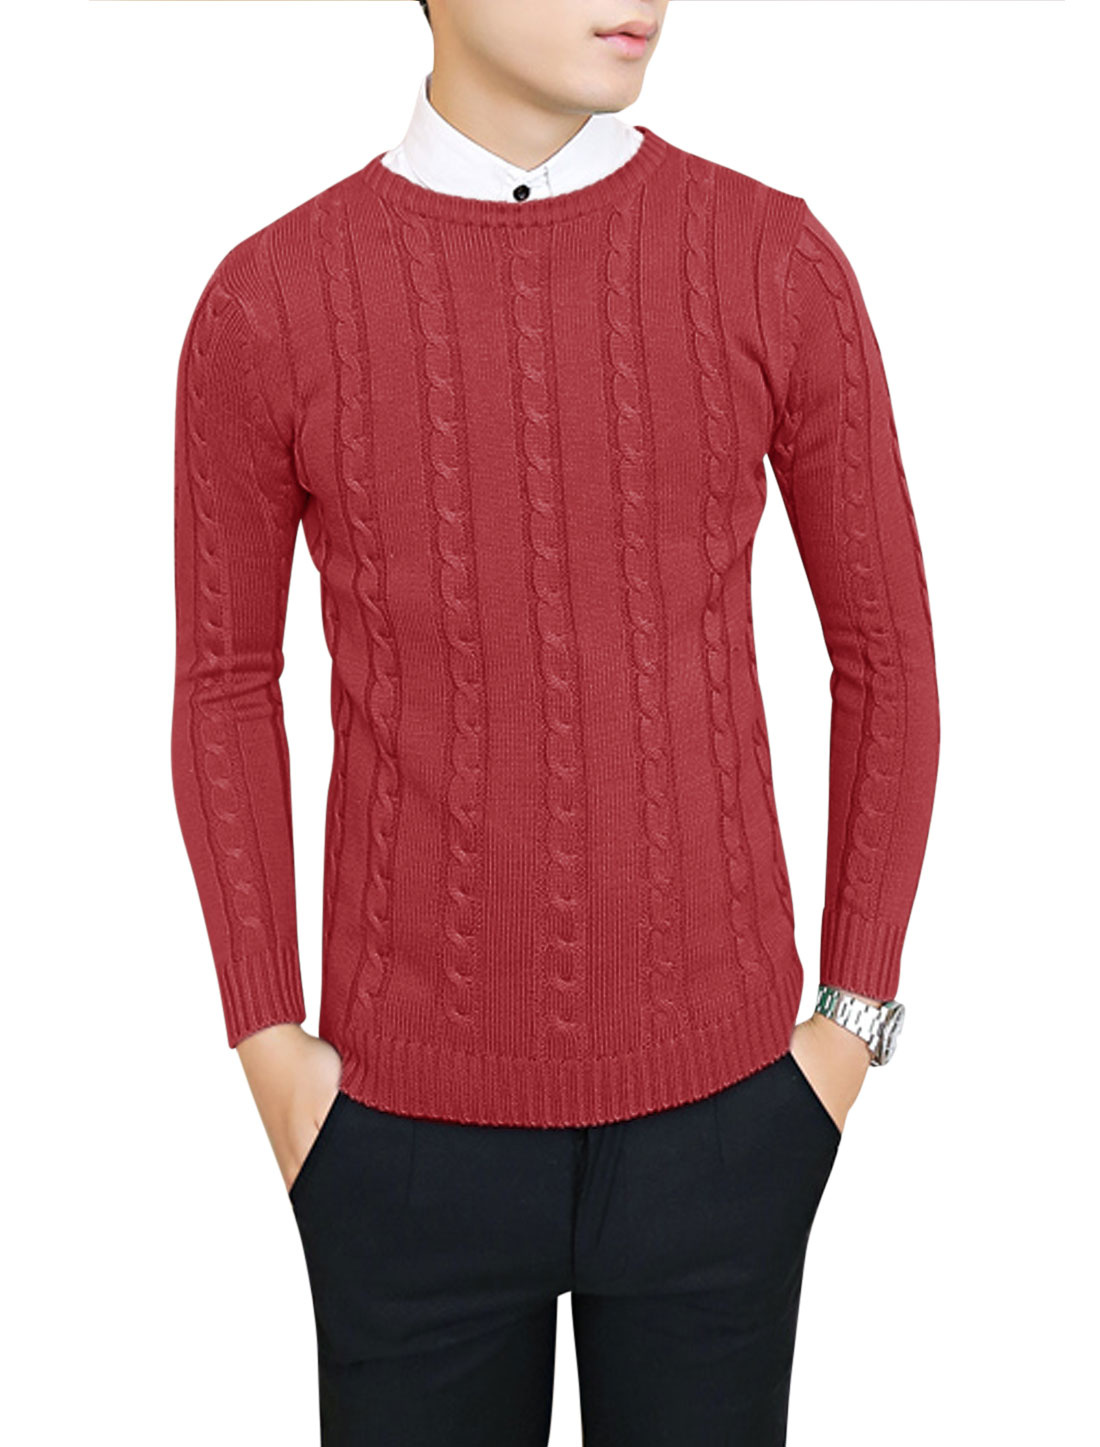 Men Crew Neck Long Sleeve Braided Ribbed Hem Casual Sweater Burgundy S